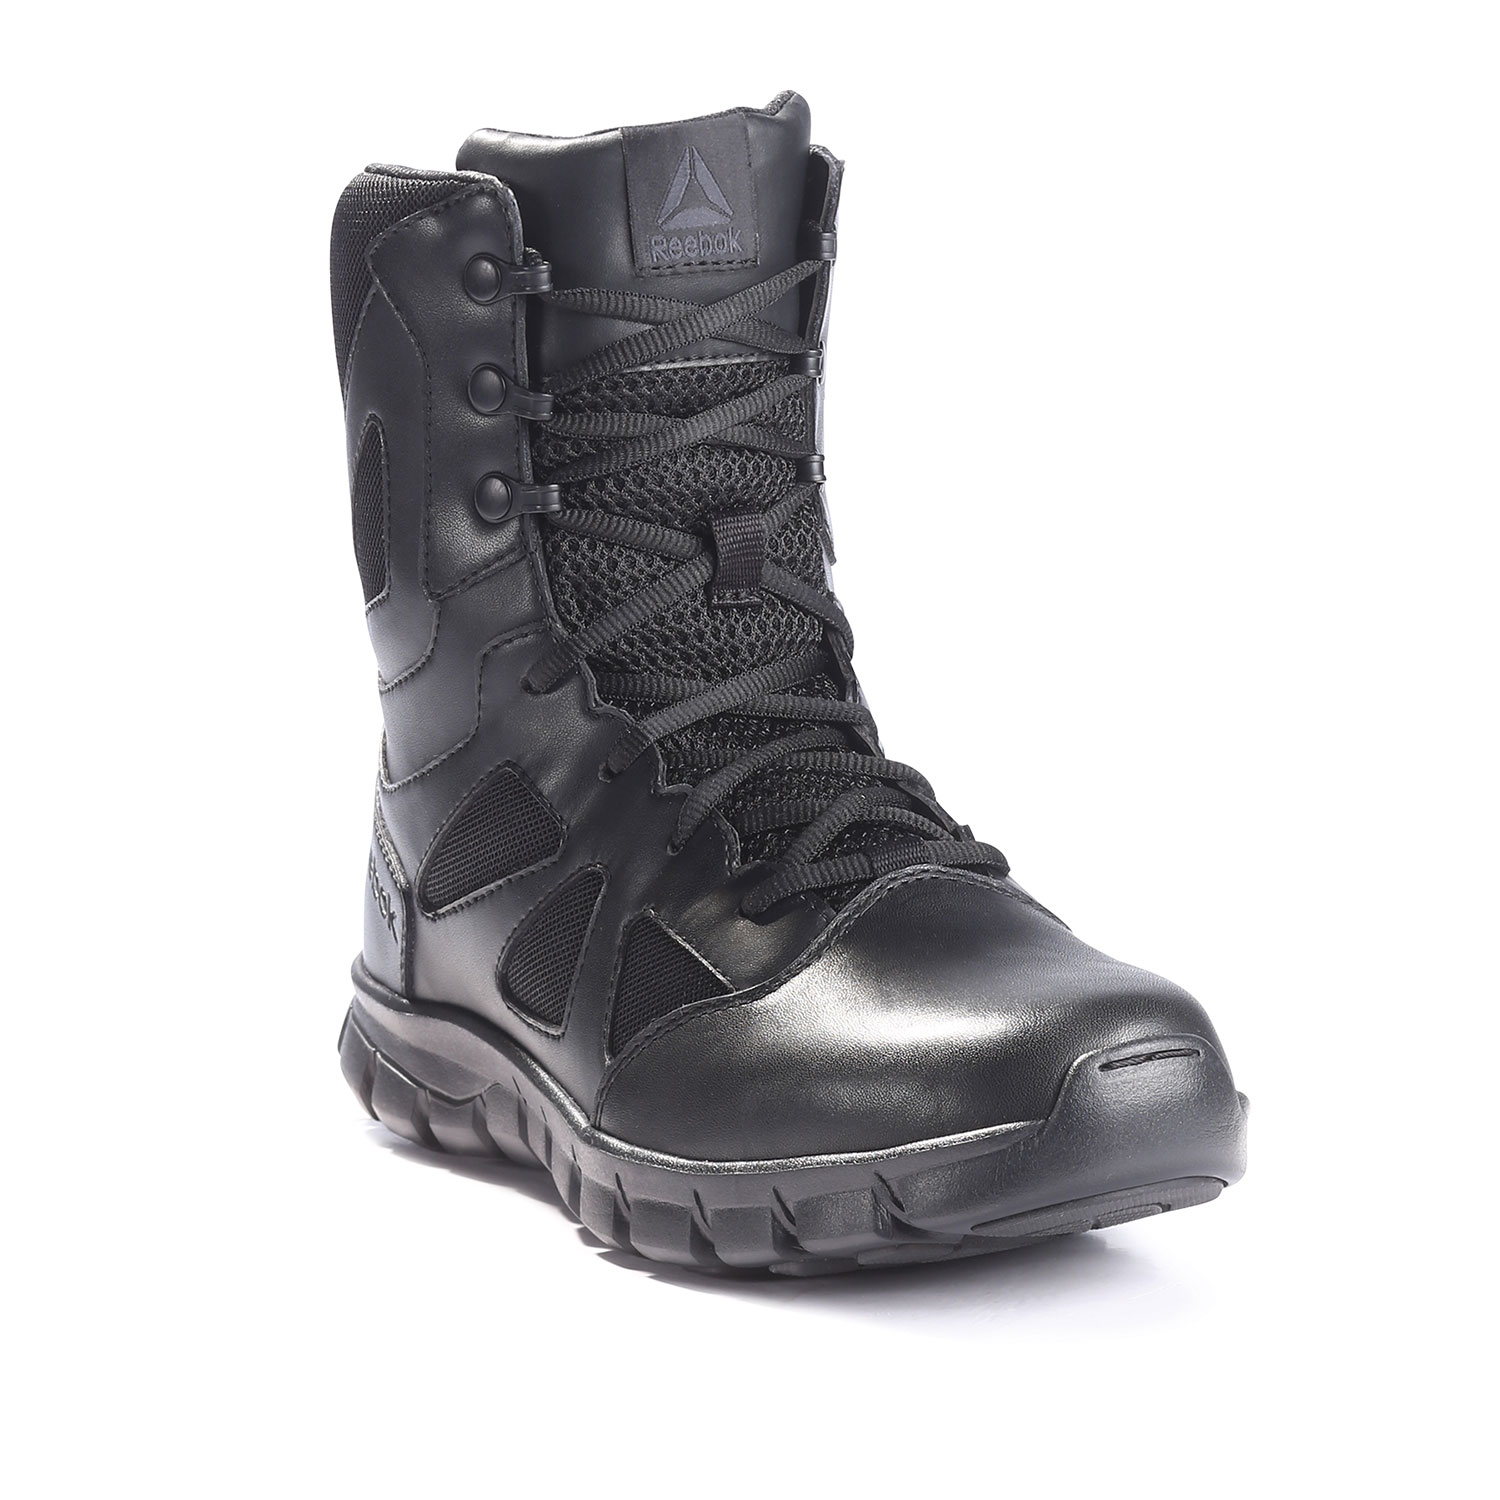 "Reebok 8"" Sublite Cushion Tactical Side Zip Waterproof Boot"